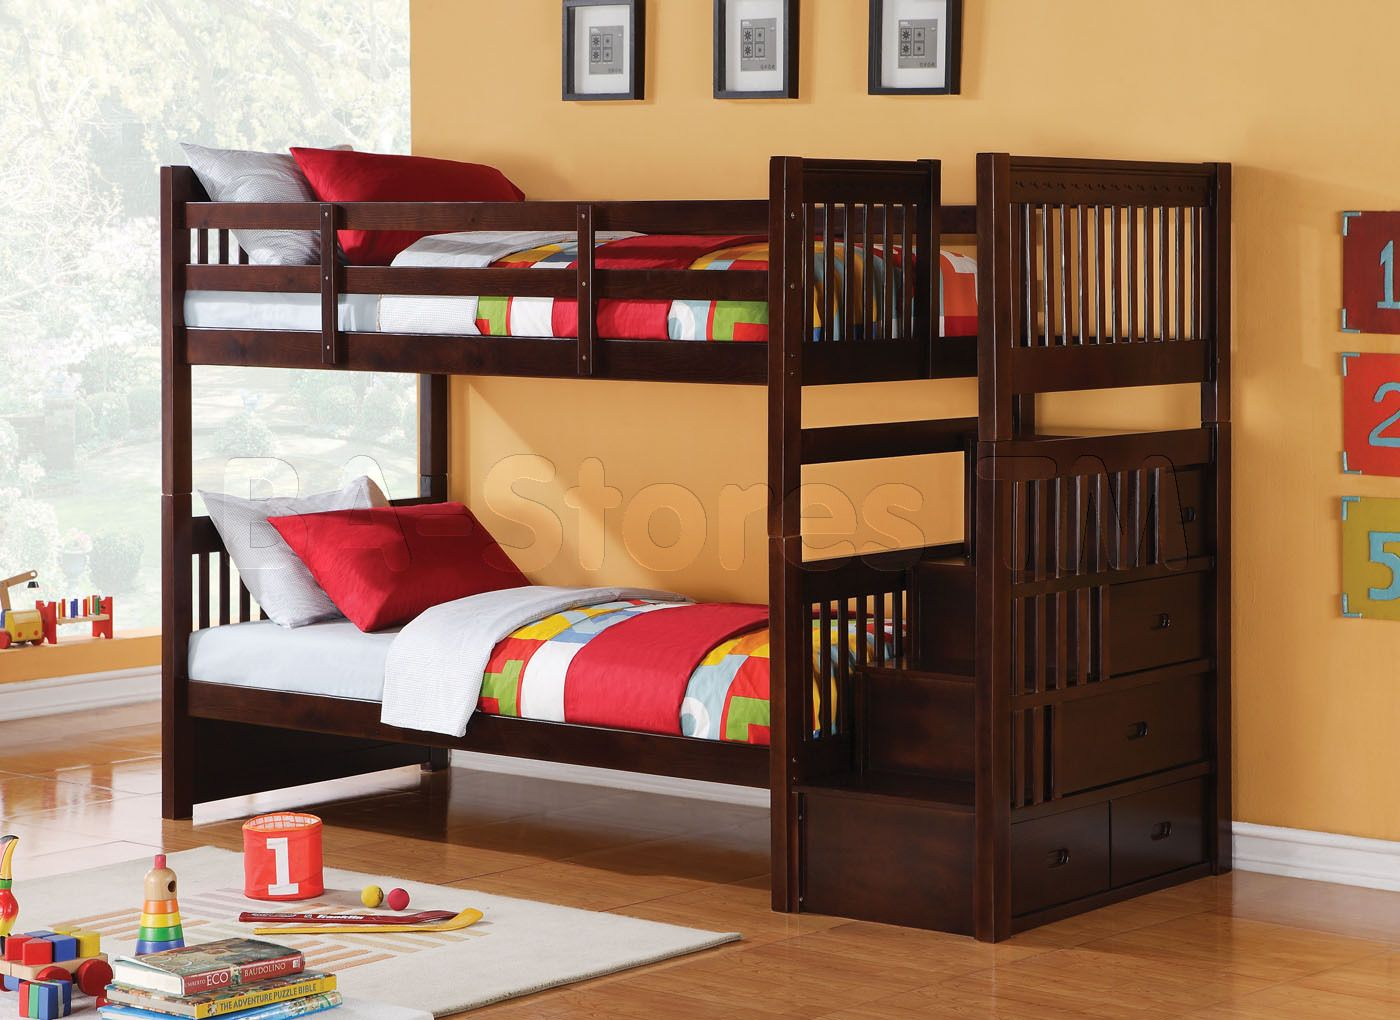 Bunk Bed With Storage alem espresso twin bunk bed storage ladder | bunk bed | pinterest